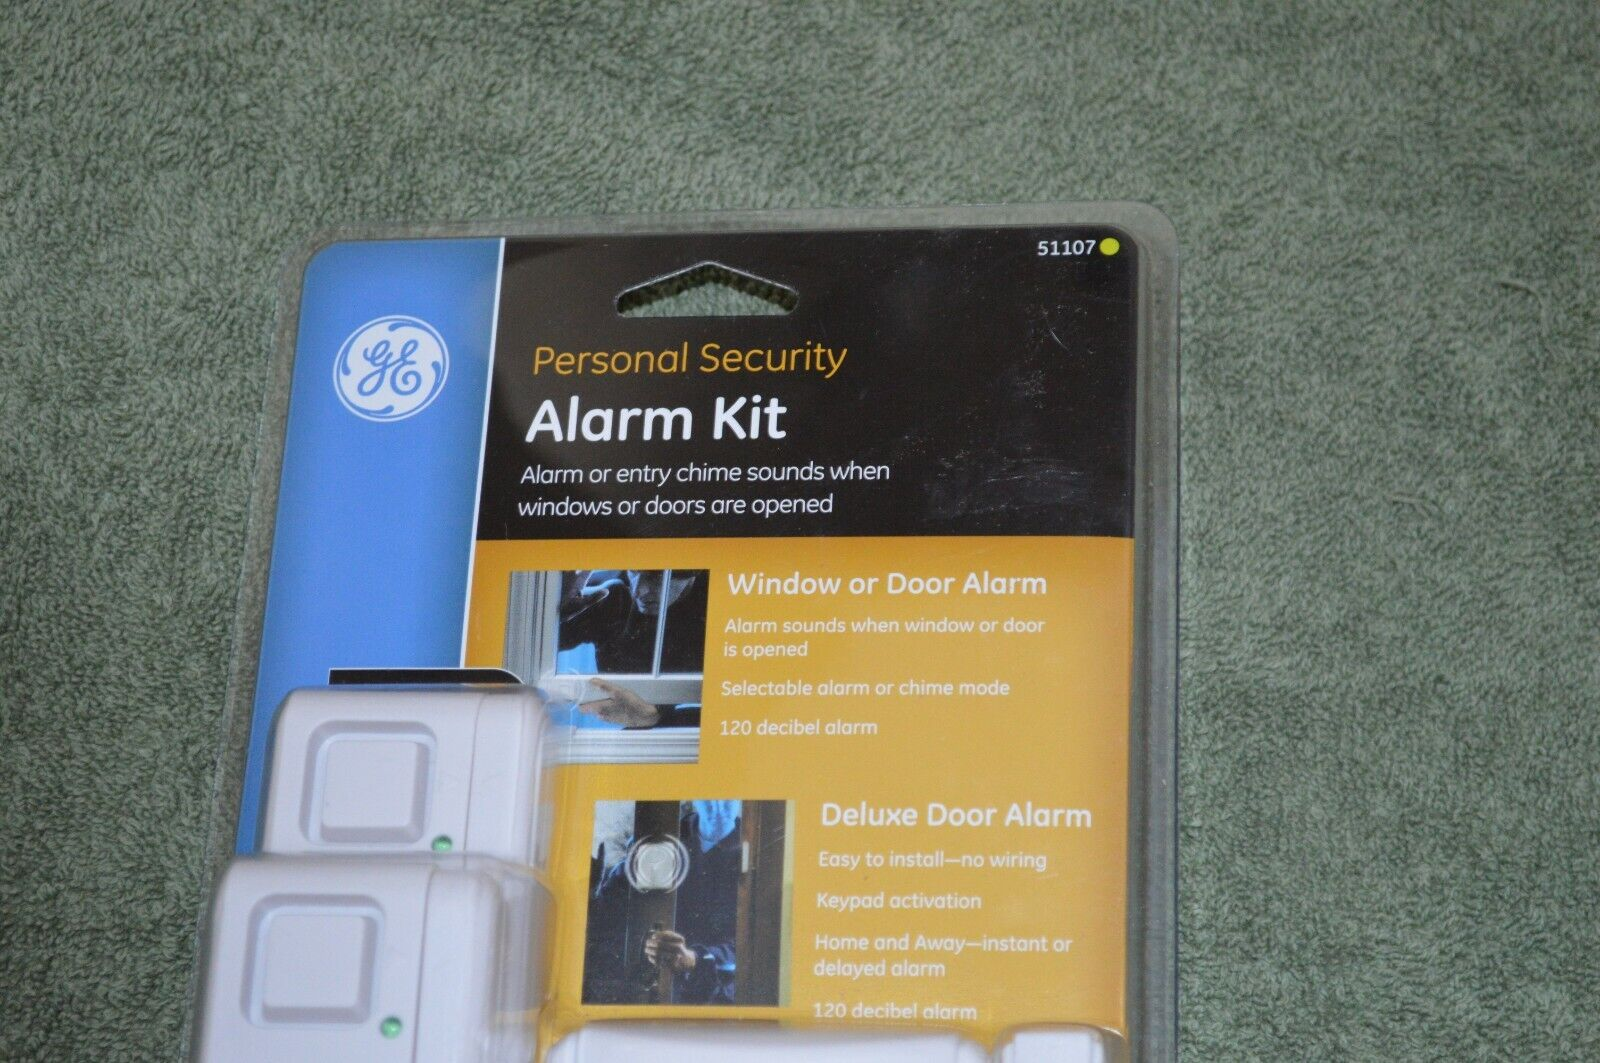 NEW GE Window Or Door Alarm Kit Personal Security Entry Chime Mode 51107  - $22.00